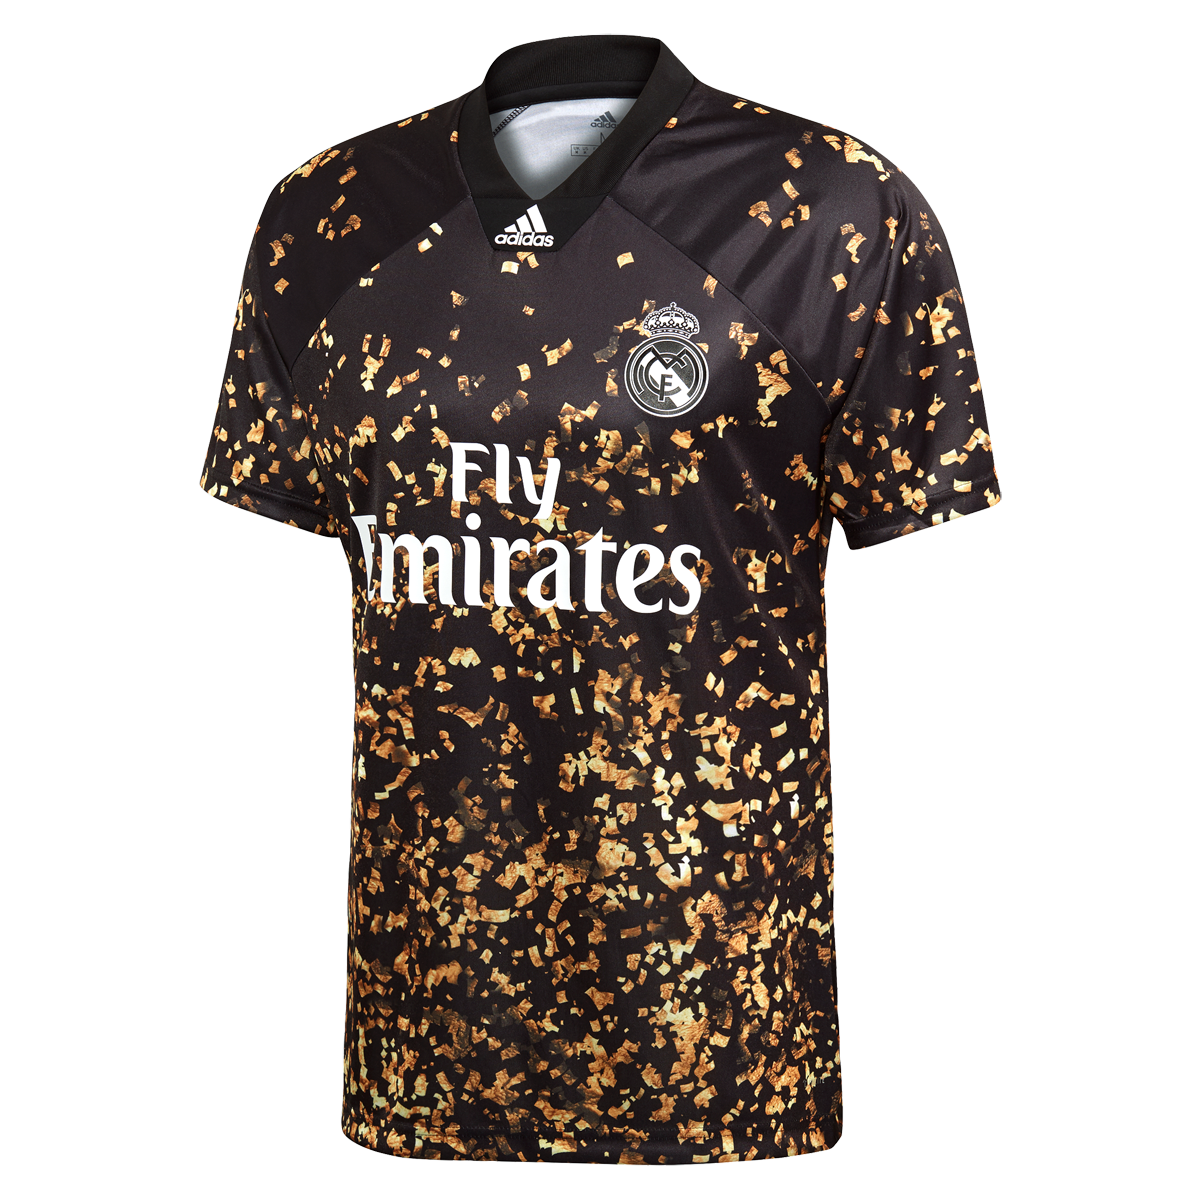 Adidas Real Madrid Ea Sports Jersey 19 20 Xs In 2020 Real Madrid Soccer Shirts Ea Sports